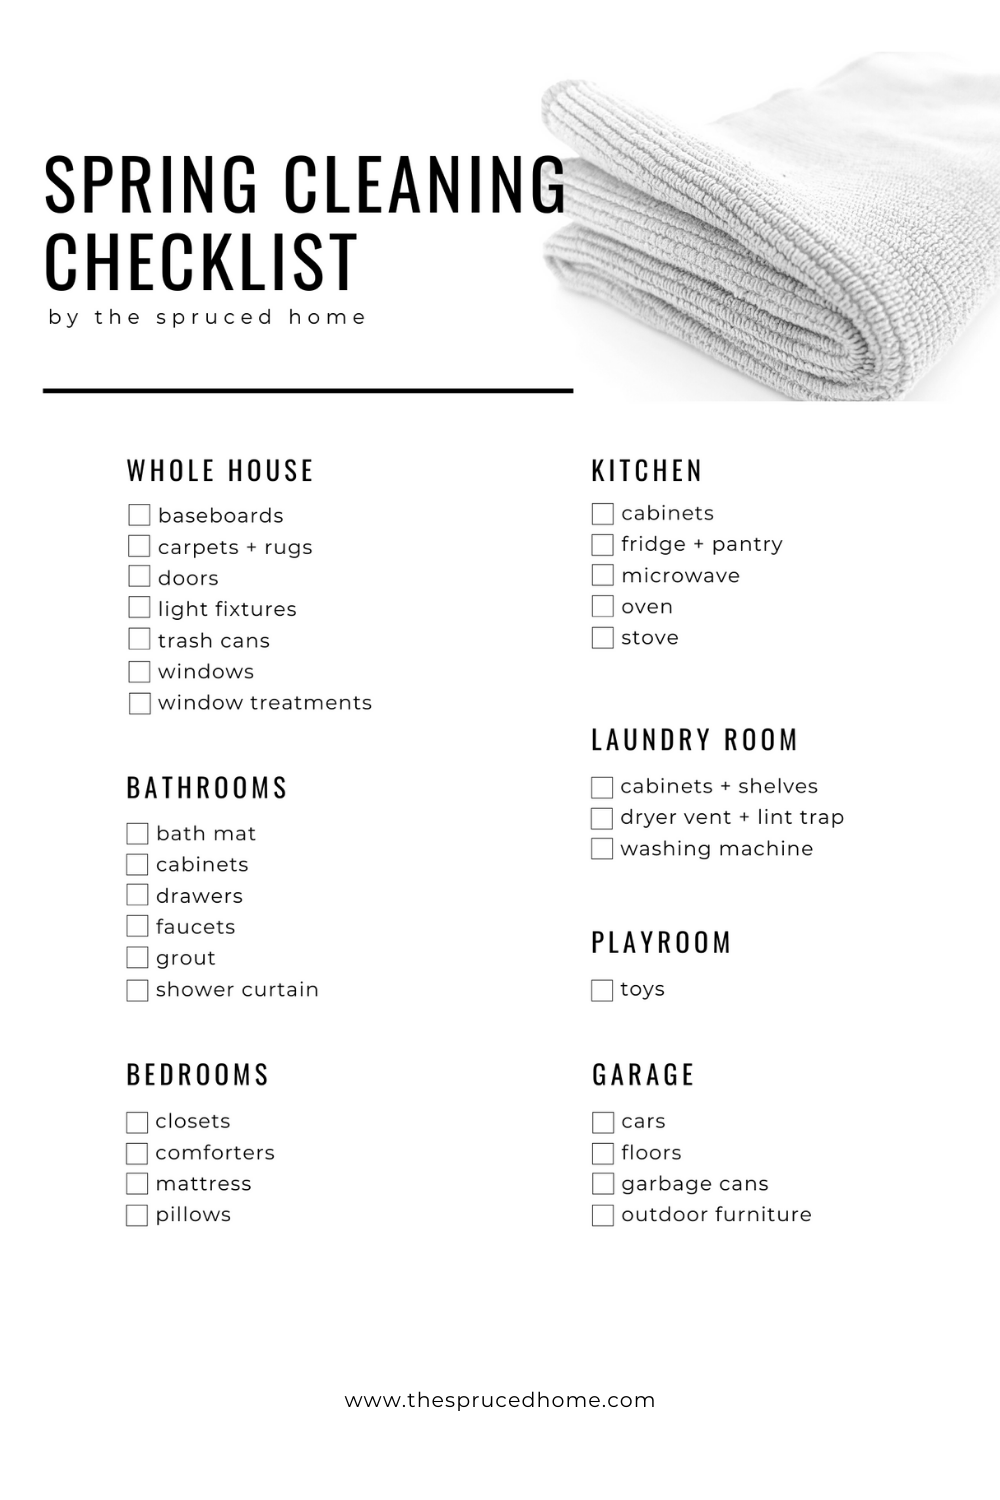 We're all spending more time at home, get the whole family involved in deep cleaning the areas of your home that are typically over-looked.  #springcleaning #homeorganizing #cleaningtips #cleaning #home